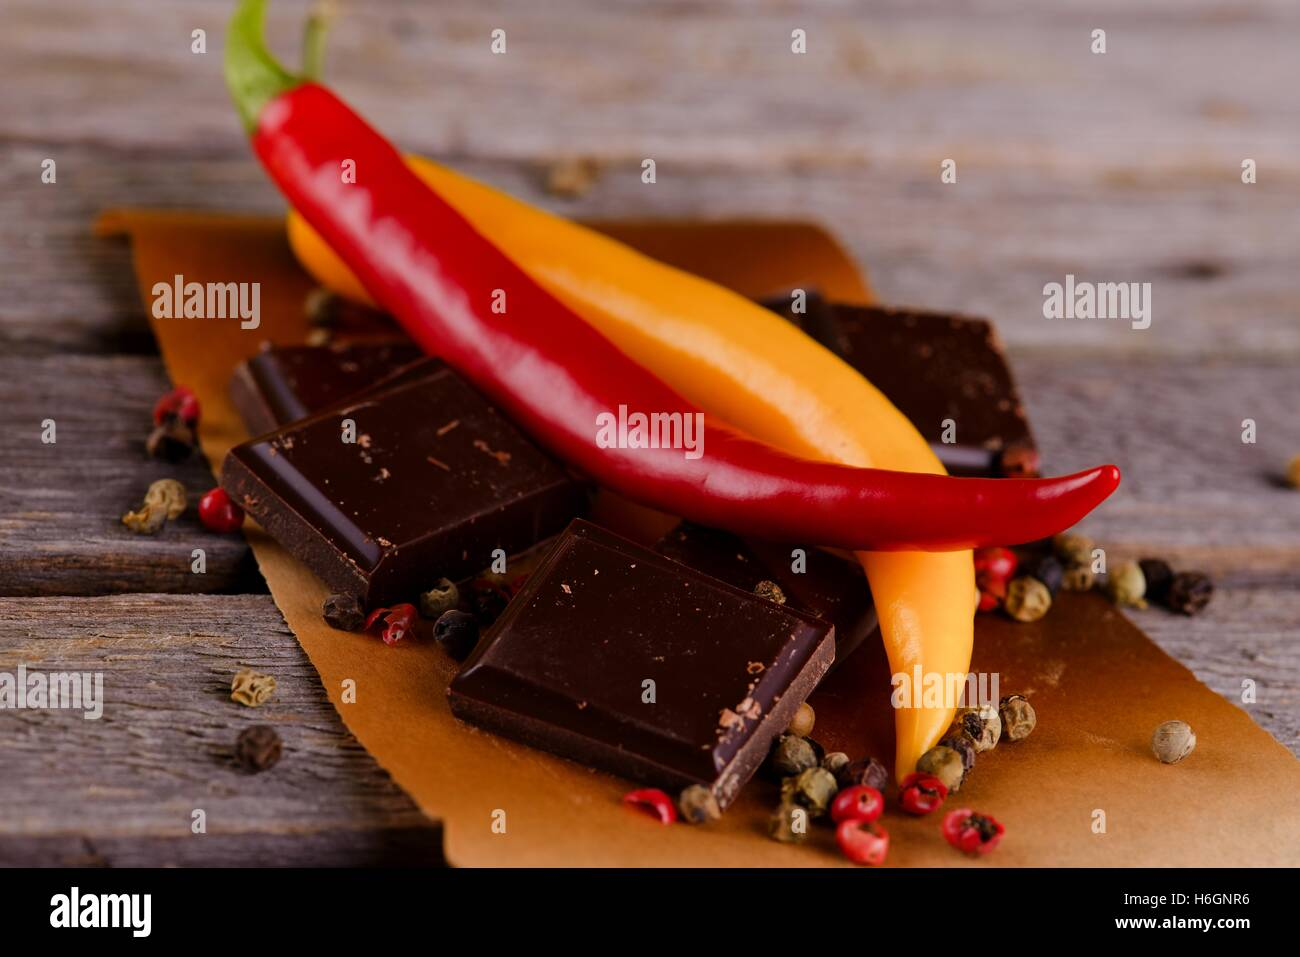 Horizontal photo of two chili peppers red and yellow placed on pieces of dark chocolate with several seeds around. - Stock Image